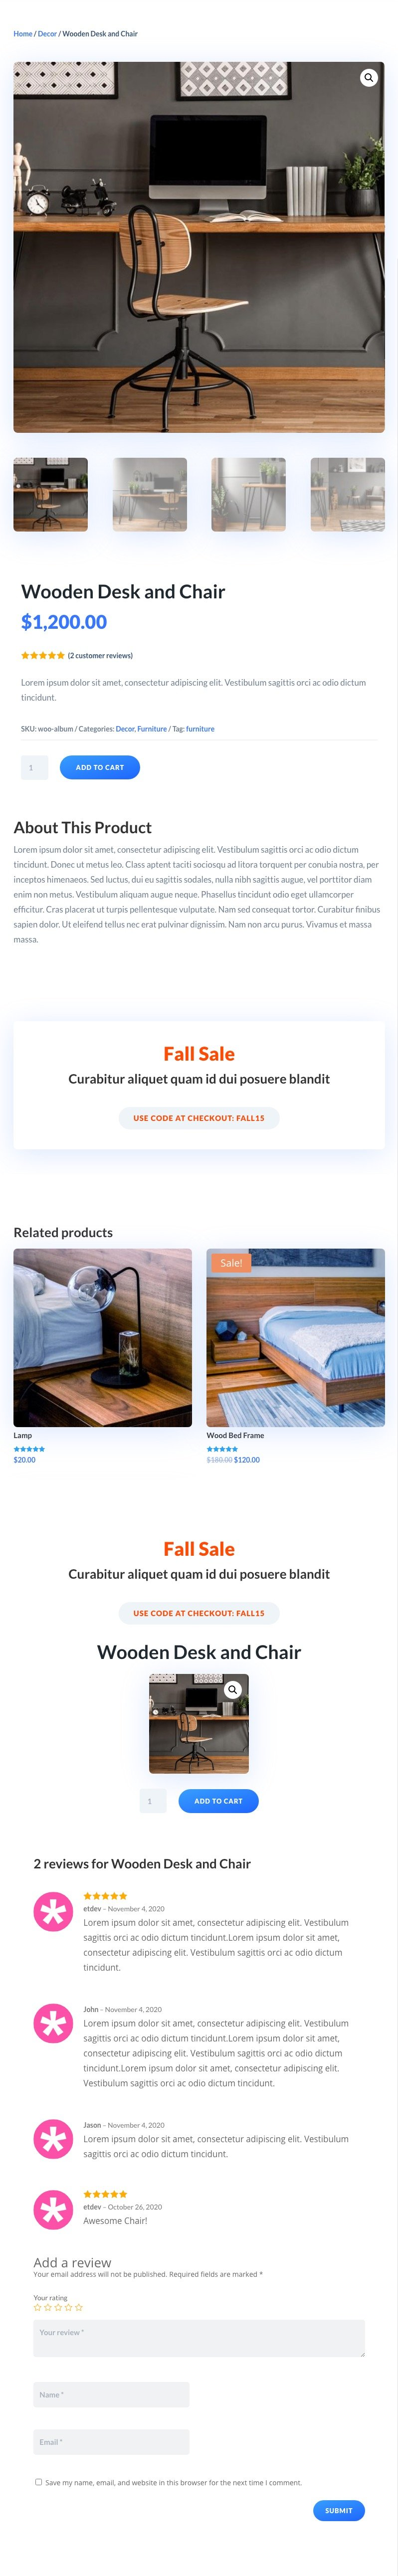 how-to-build-a-custom-sidebar-with-sticky-columns-for-a-divi-product-page-template How to Build a Custom Sidebar with Sticky Columns for a Divi Product Page Template